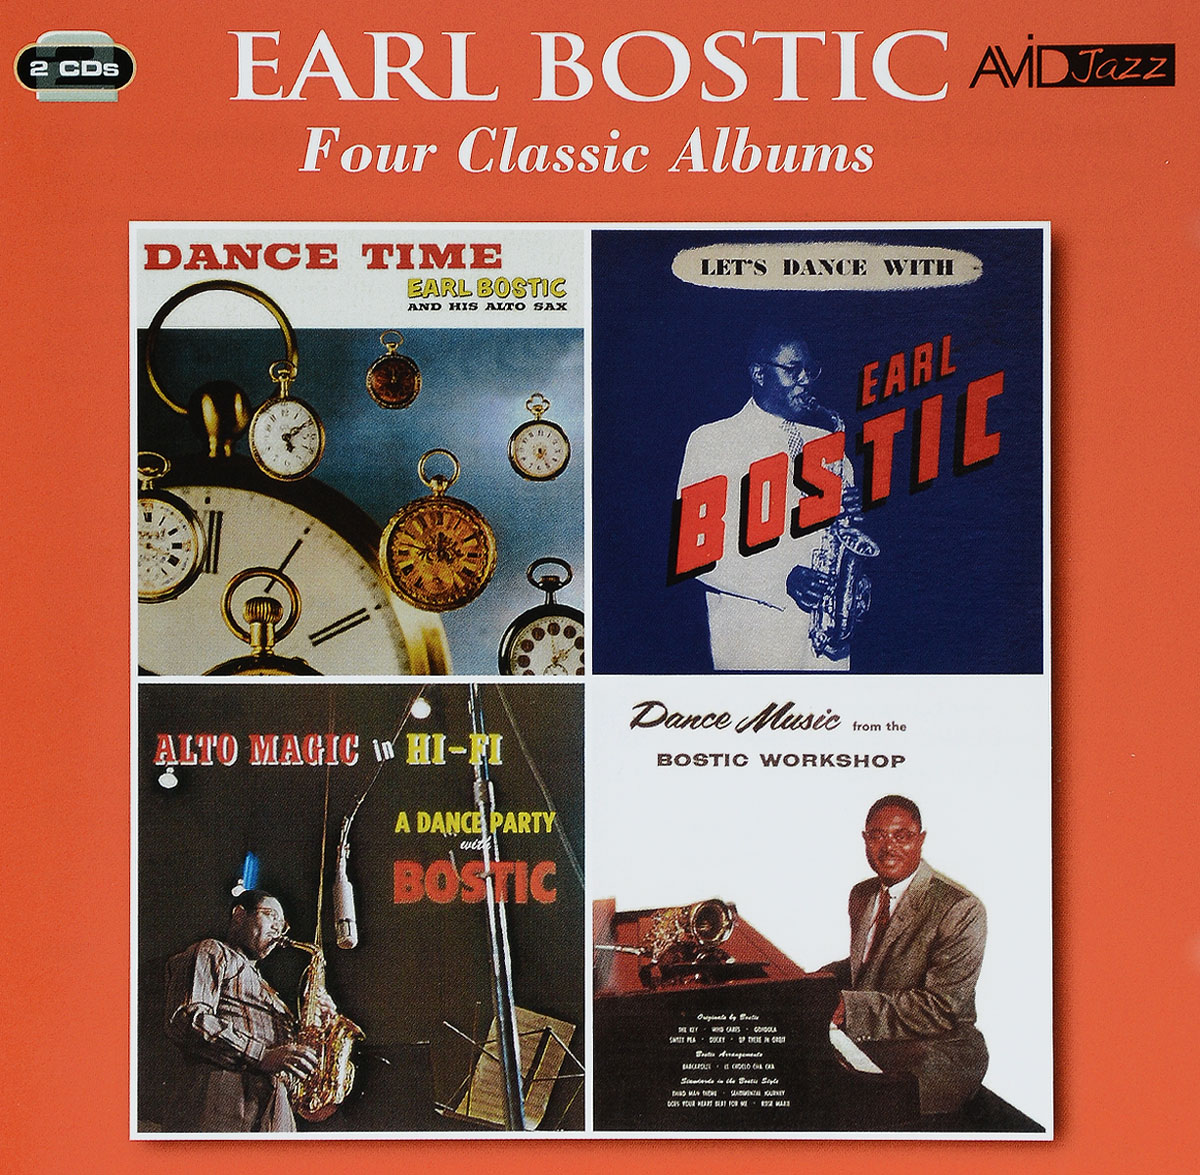 Эрл Бостик Avid Jazz. Earl Bostic. Four Classic Albums (2 CD) джордж бенсон эрл клаф george benson earl klugh collaboration